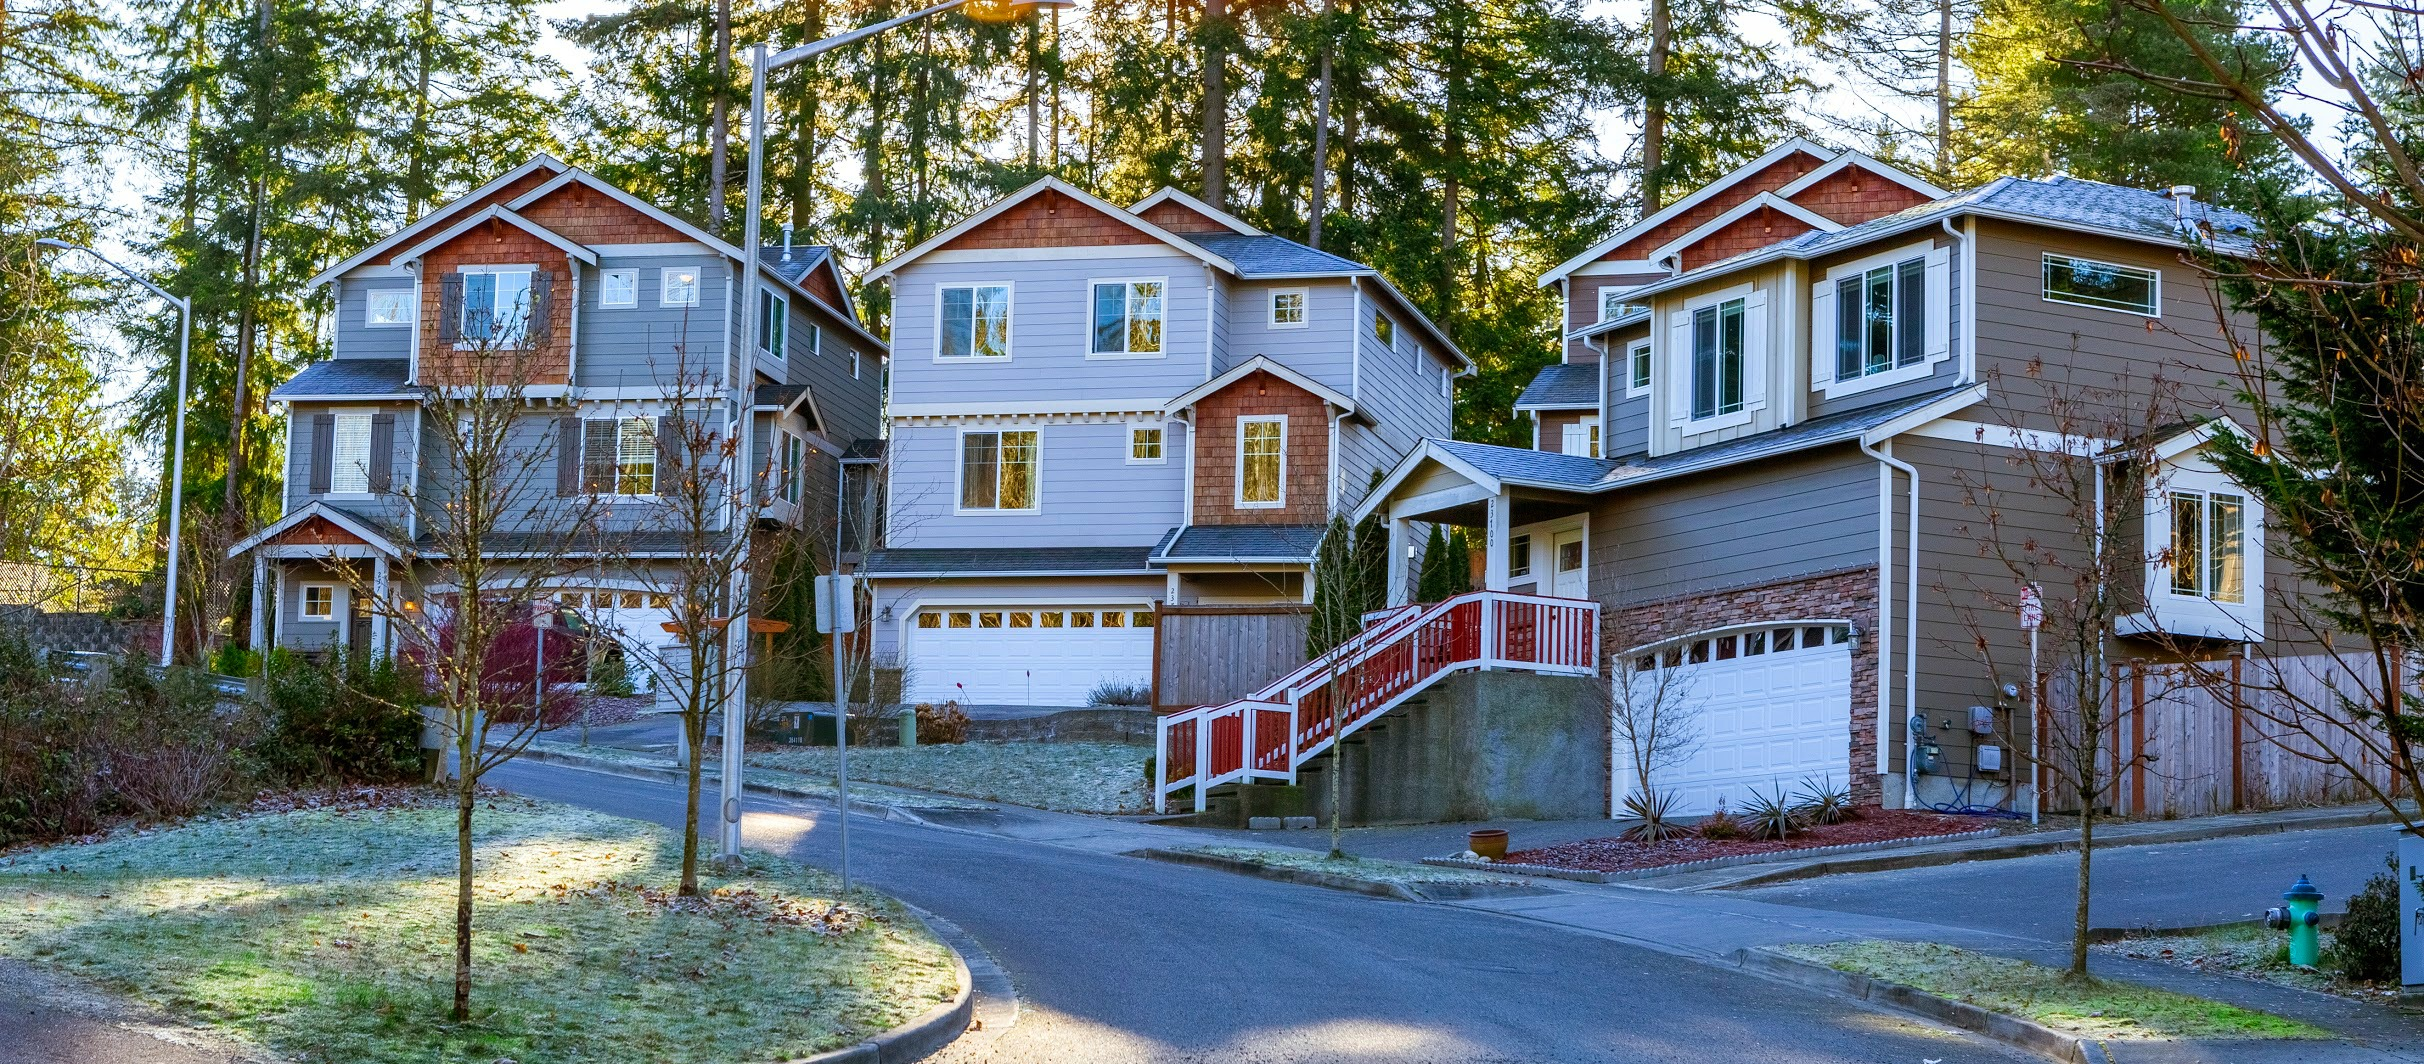 If you're searching for a home in Mountlake Terrace, you can expect to find